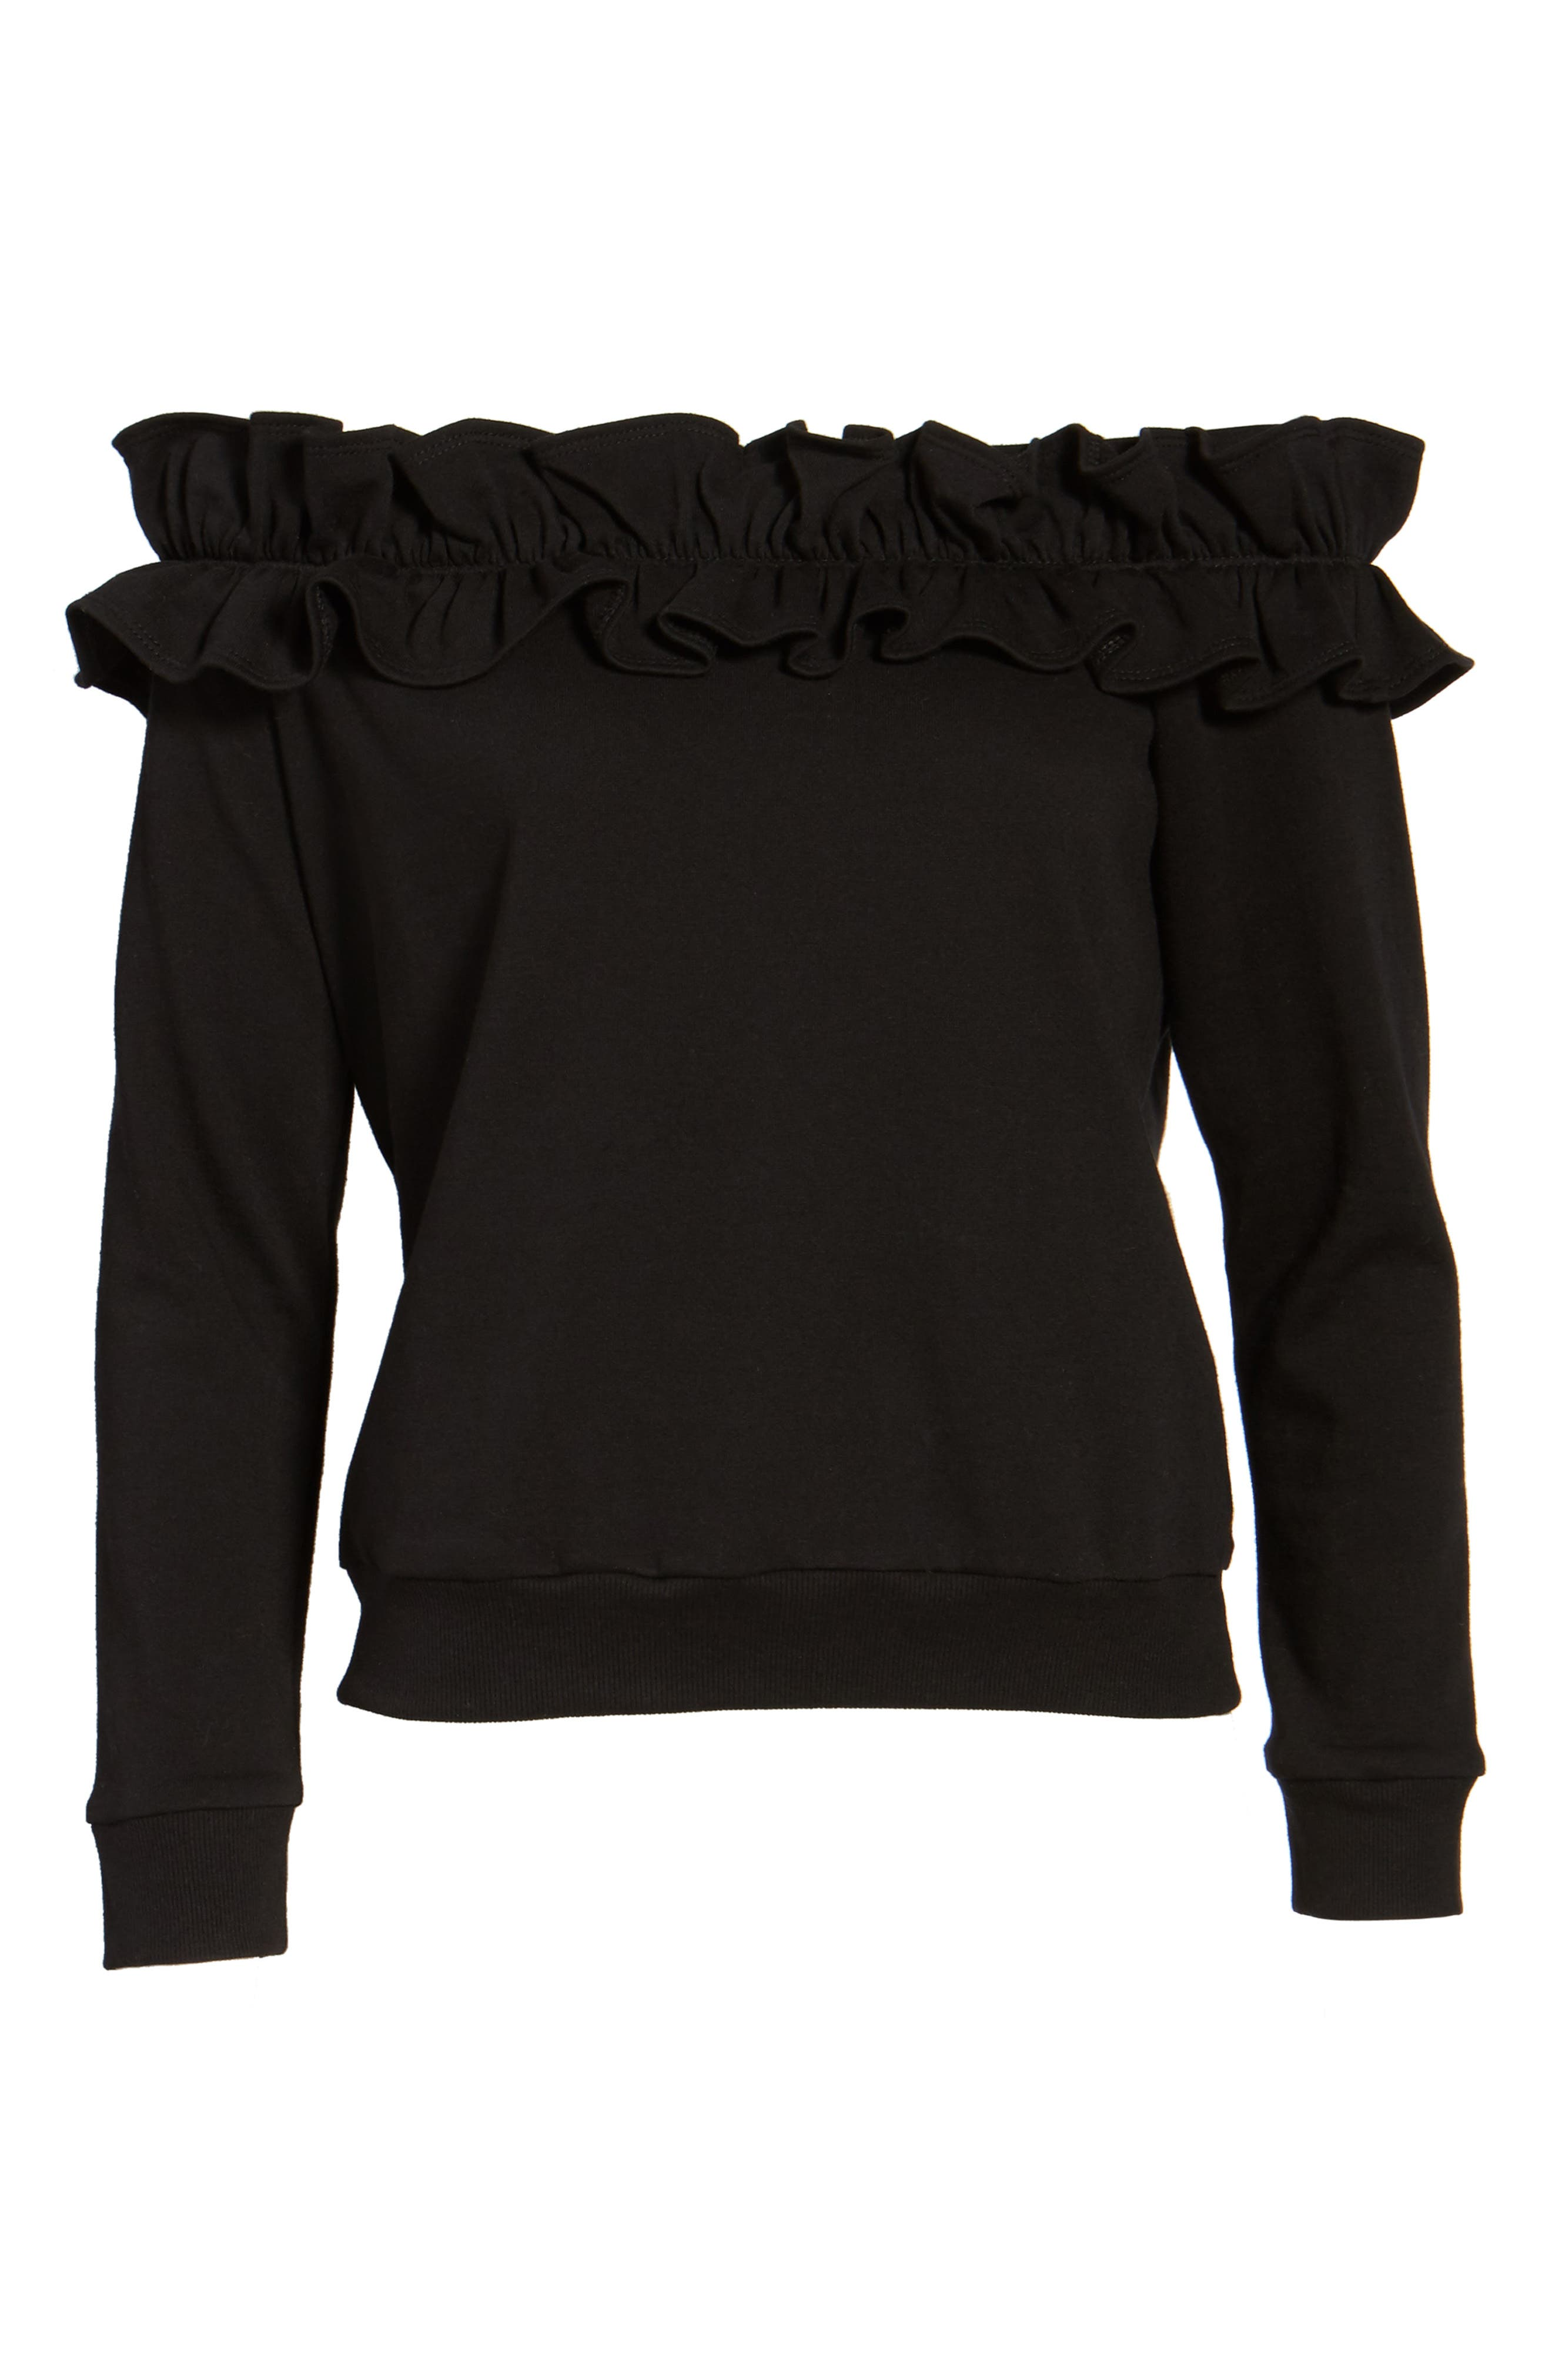 Alternate Image 1 Selected - Socialite Ruffle Off the Shoulder Top